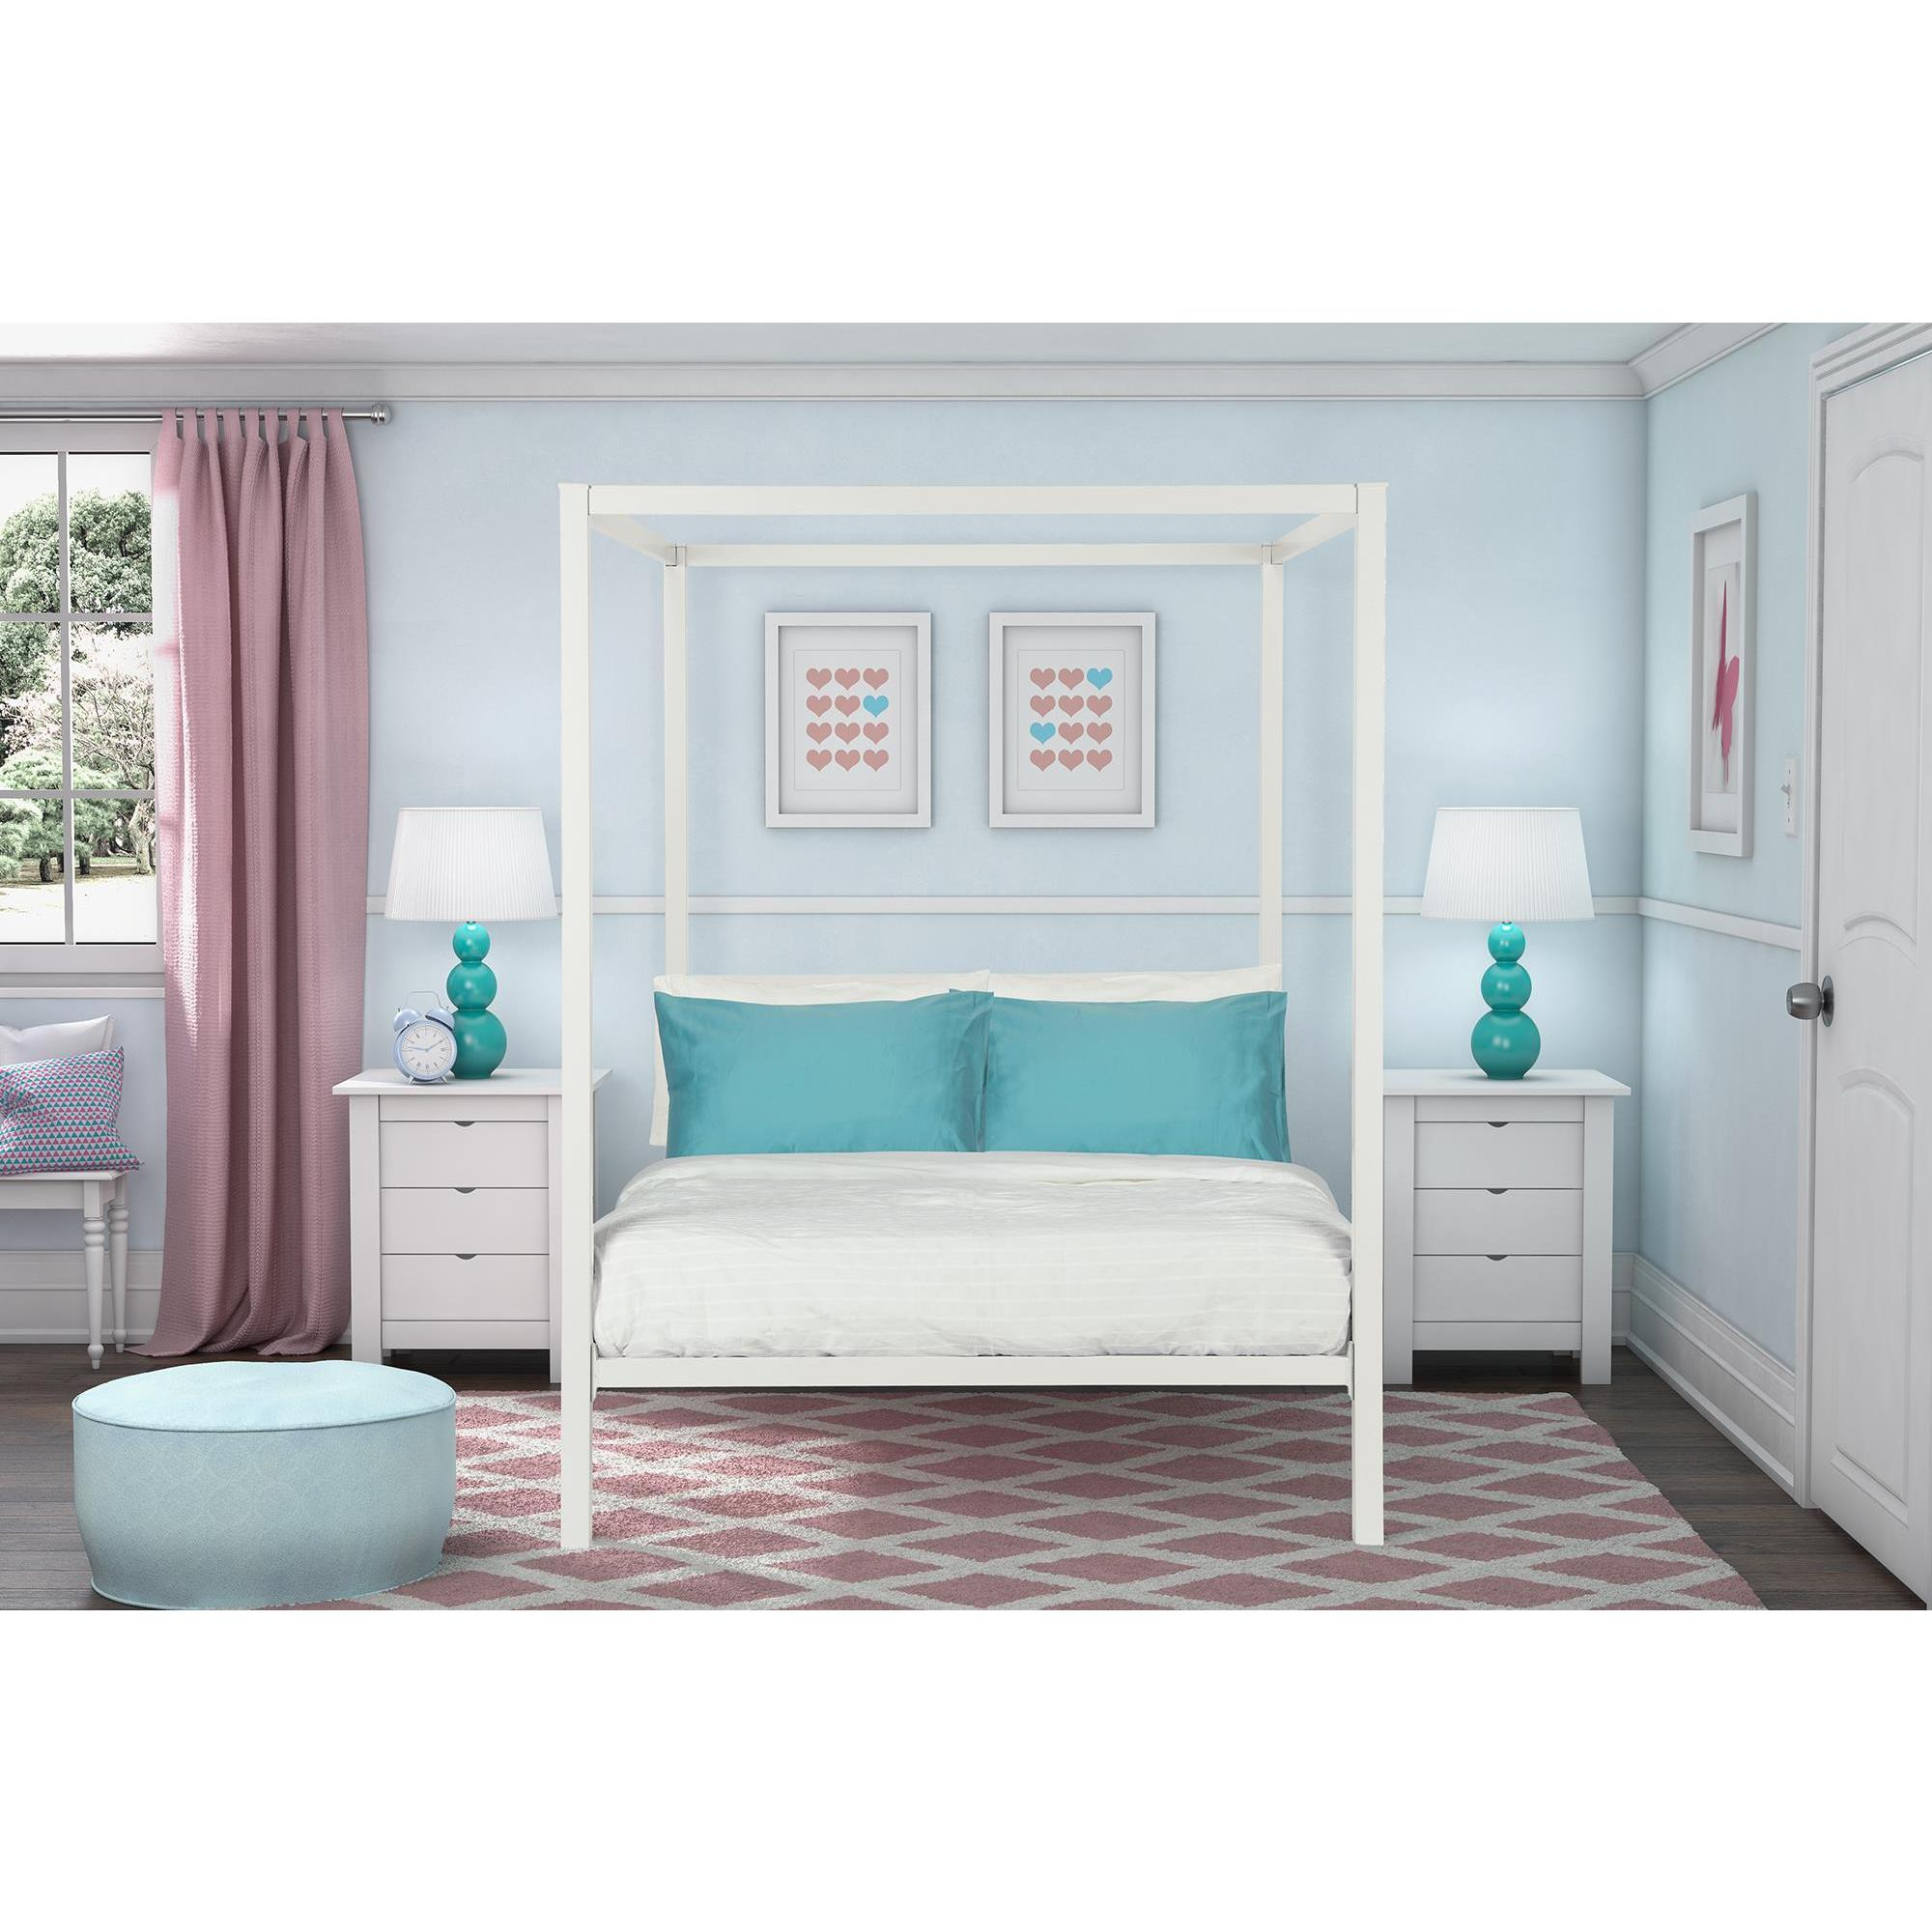 Shop DHP Modern White Metal Full Canopy Bed - Free Shipping On Orders Over $45 - Overstock - 11766623  sc 1 st  Overstock.com & Shop DHP Modern White Metal Full Canopy Bed - Free Shipping On ...